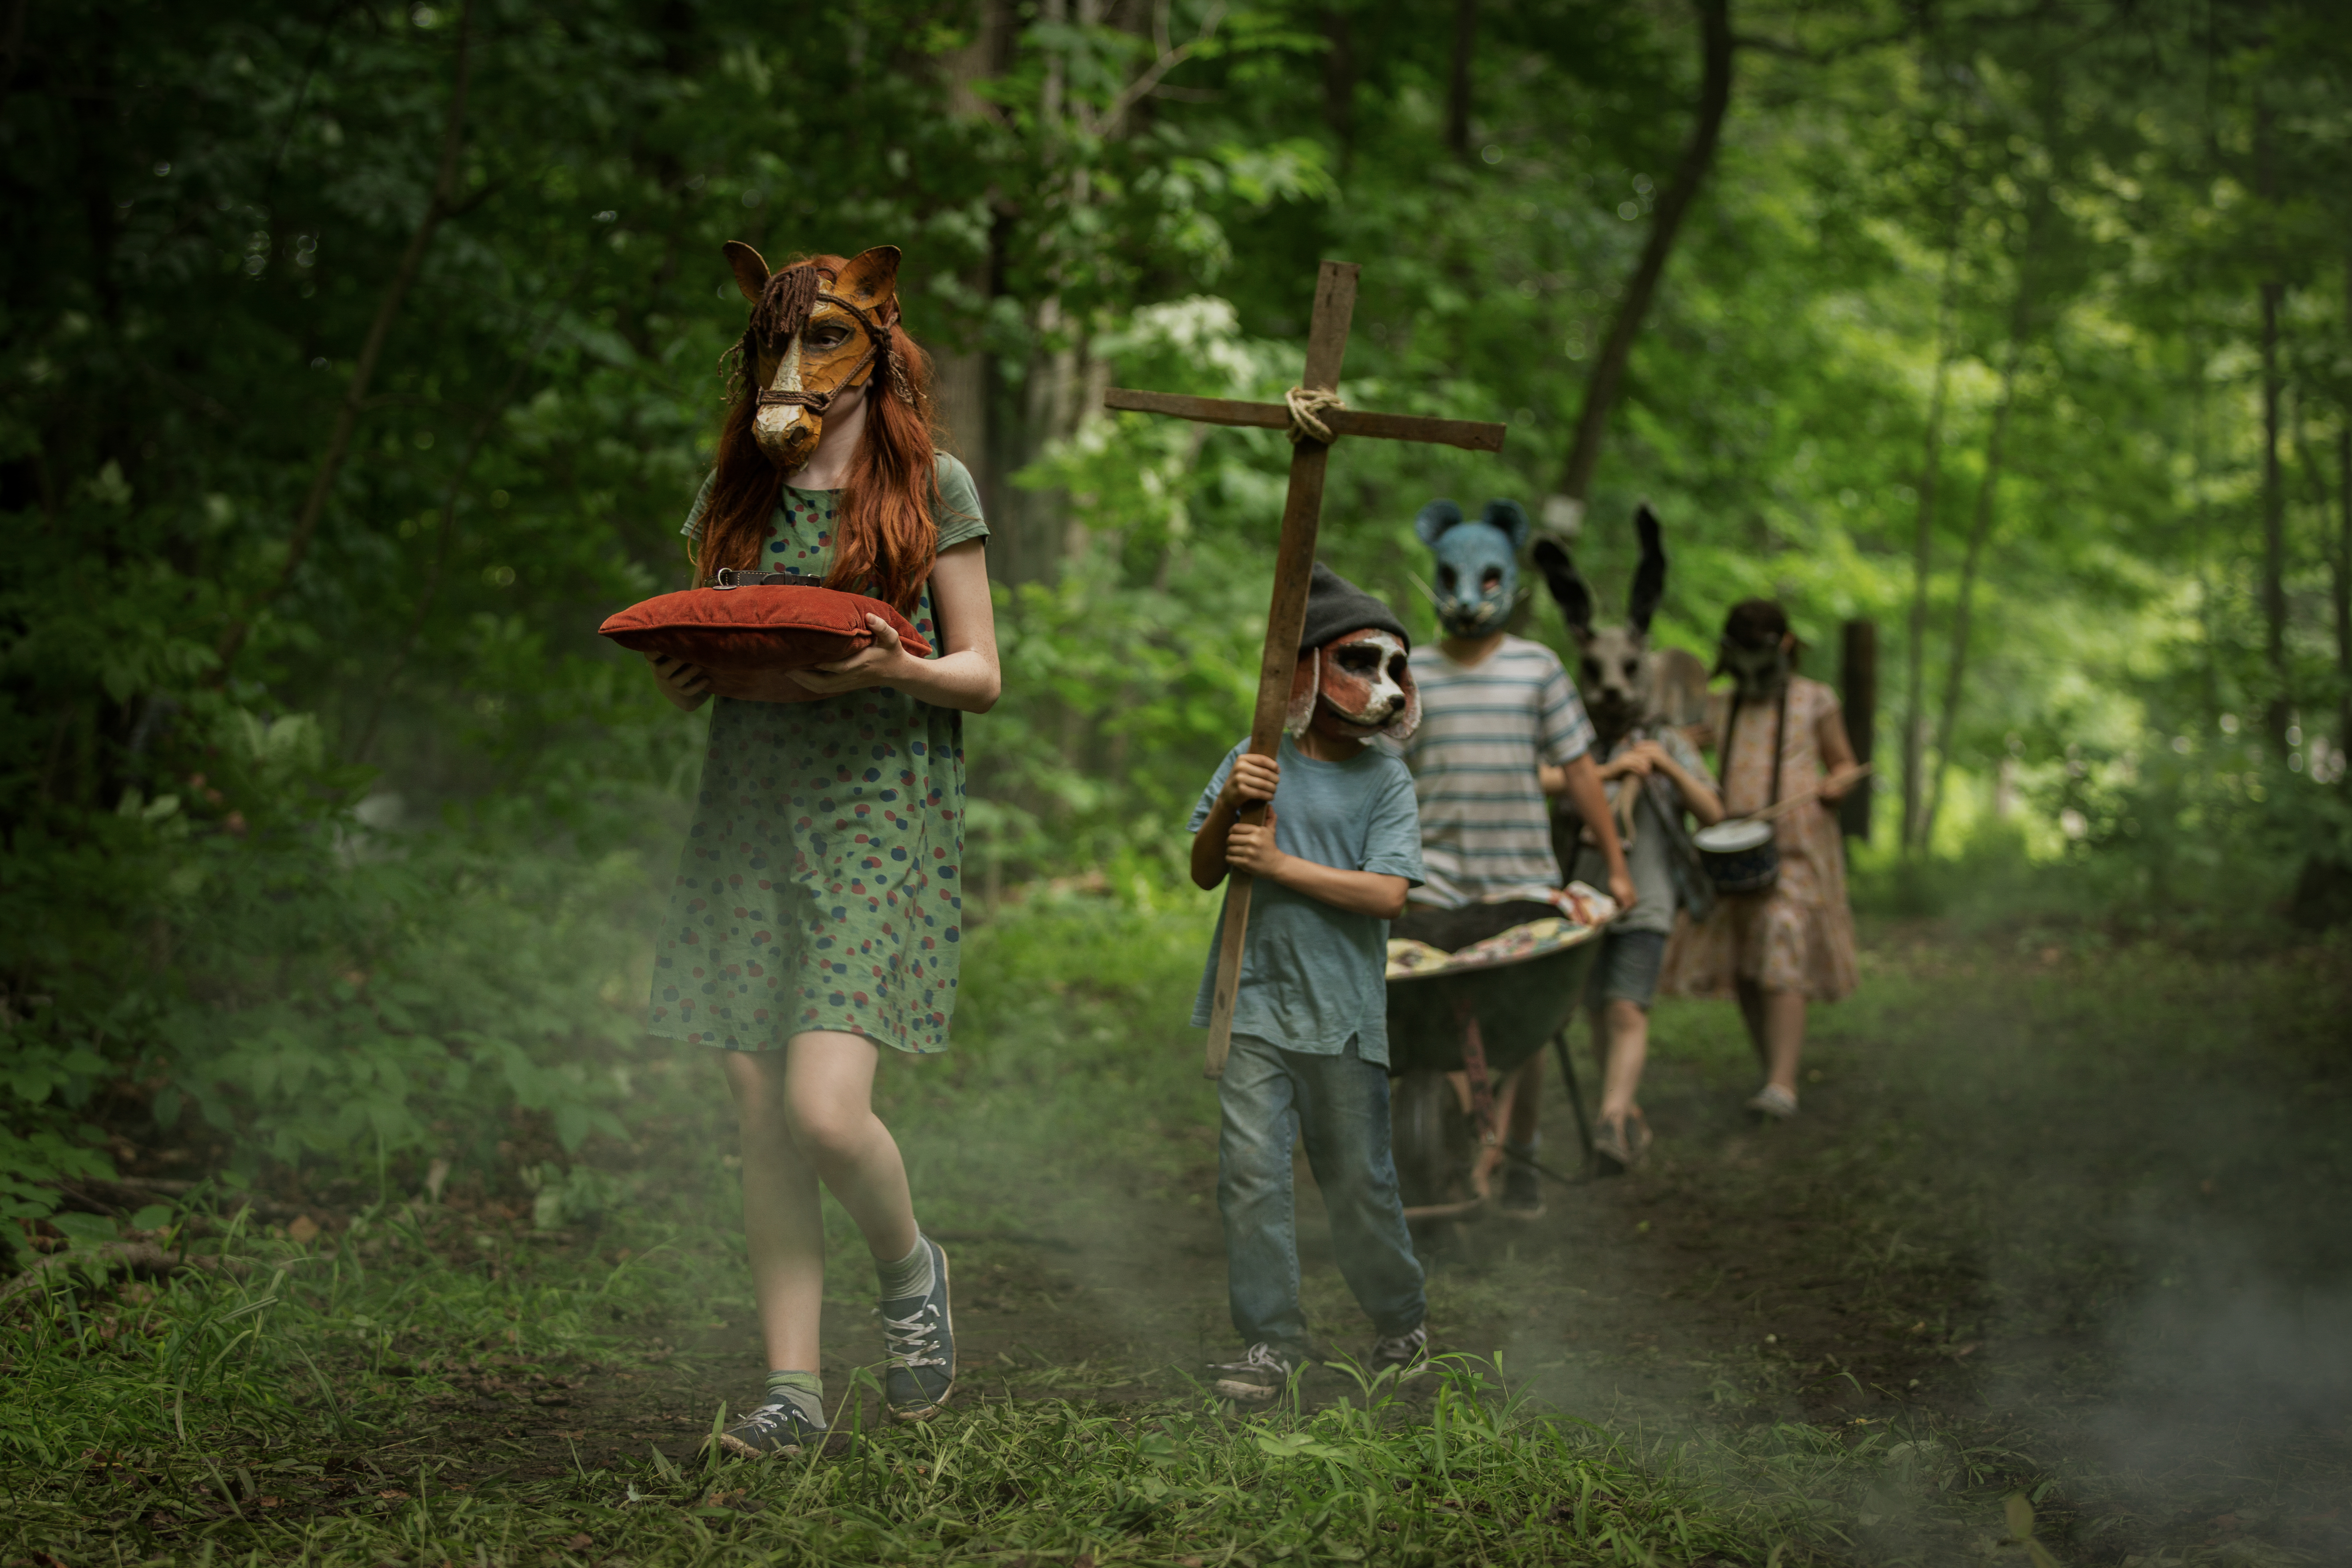 [News] PET SEMATARY Arrives on Home Video/VOD July 9th